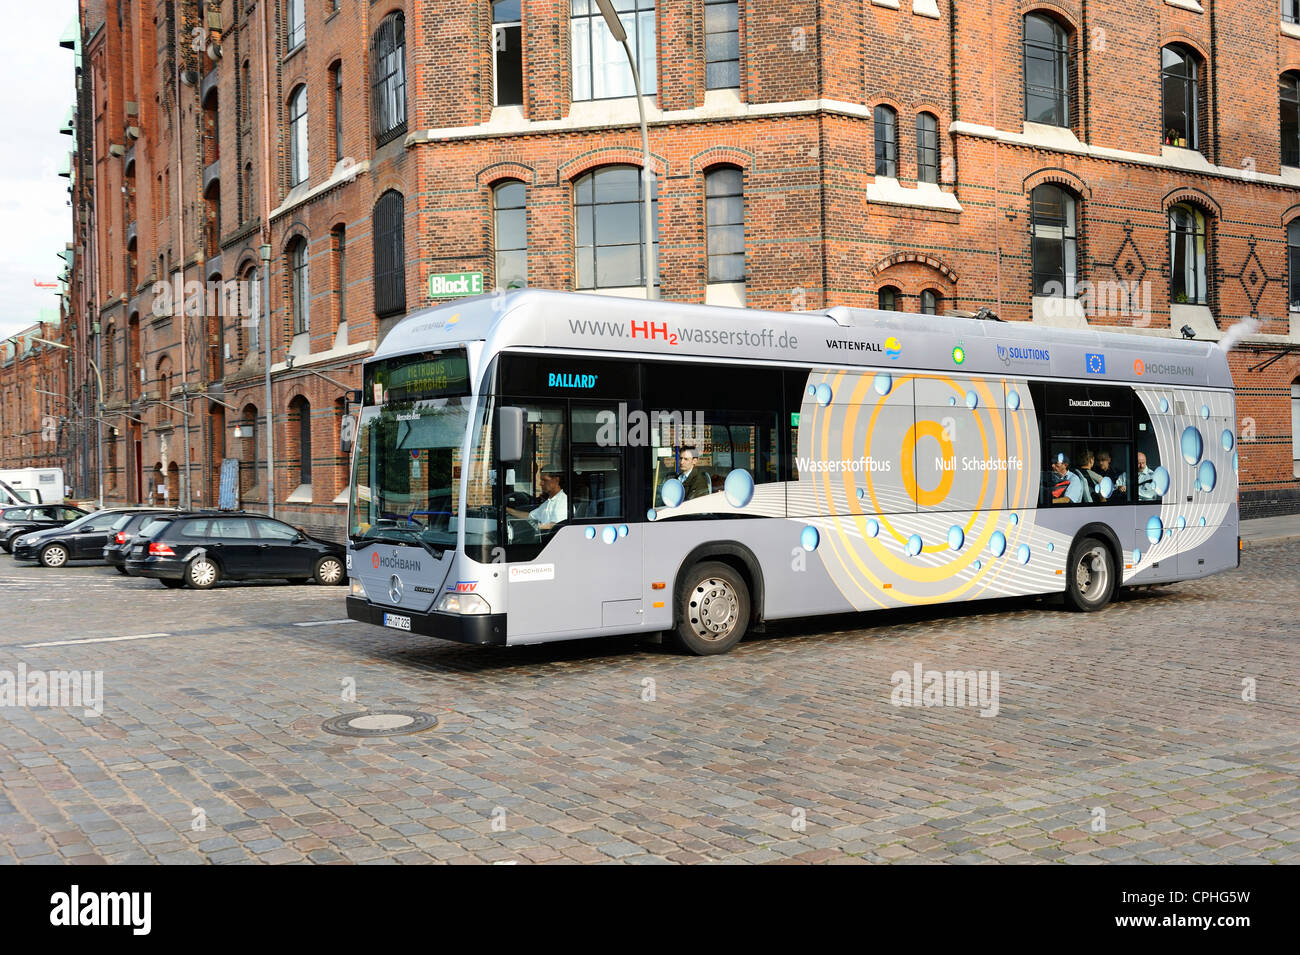 hydrogen fuel propellant bus means of transportation hamburg stock photo royalty free. Black Bedroom Furniture Sets. Home Design Ideas